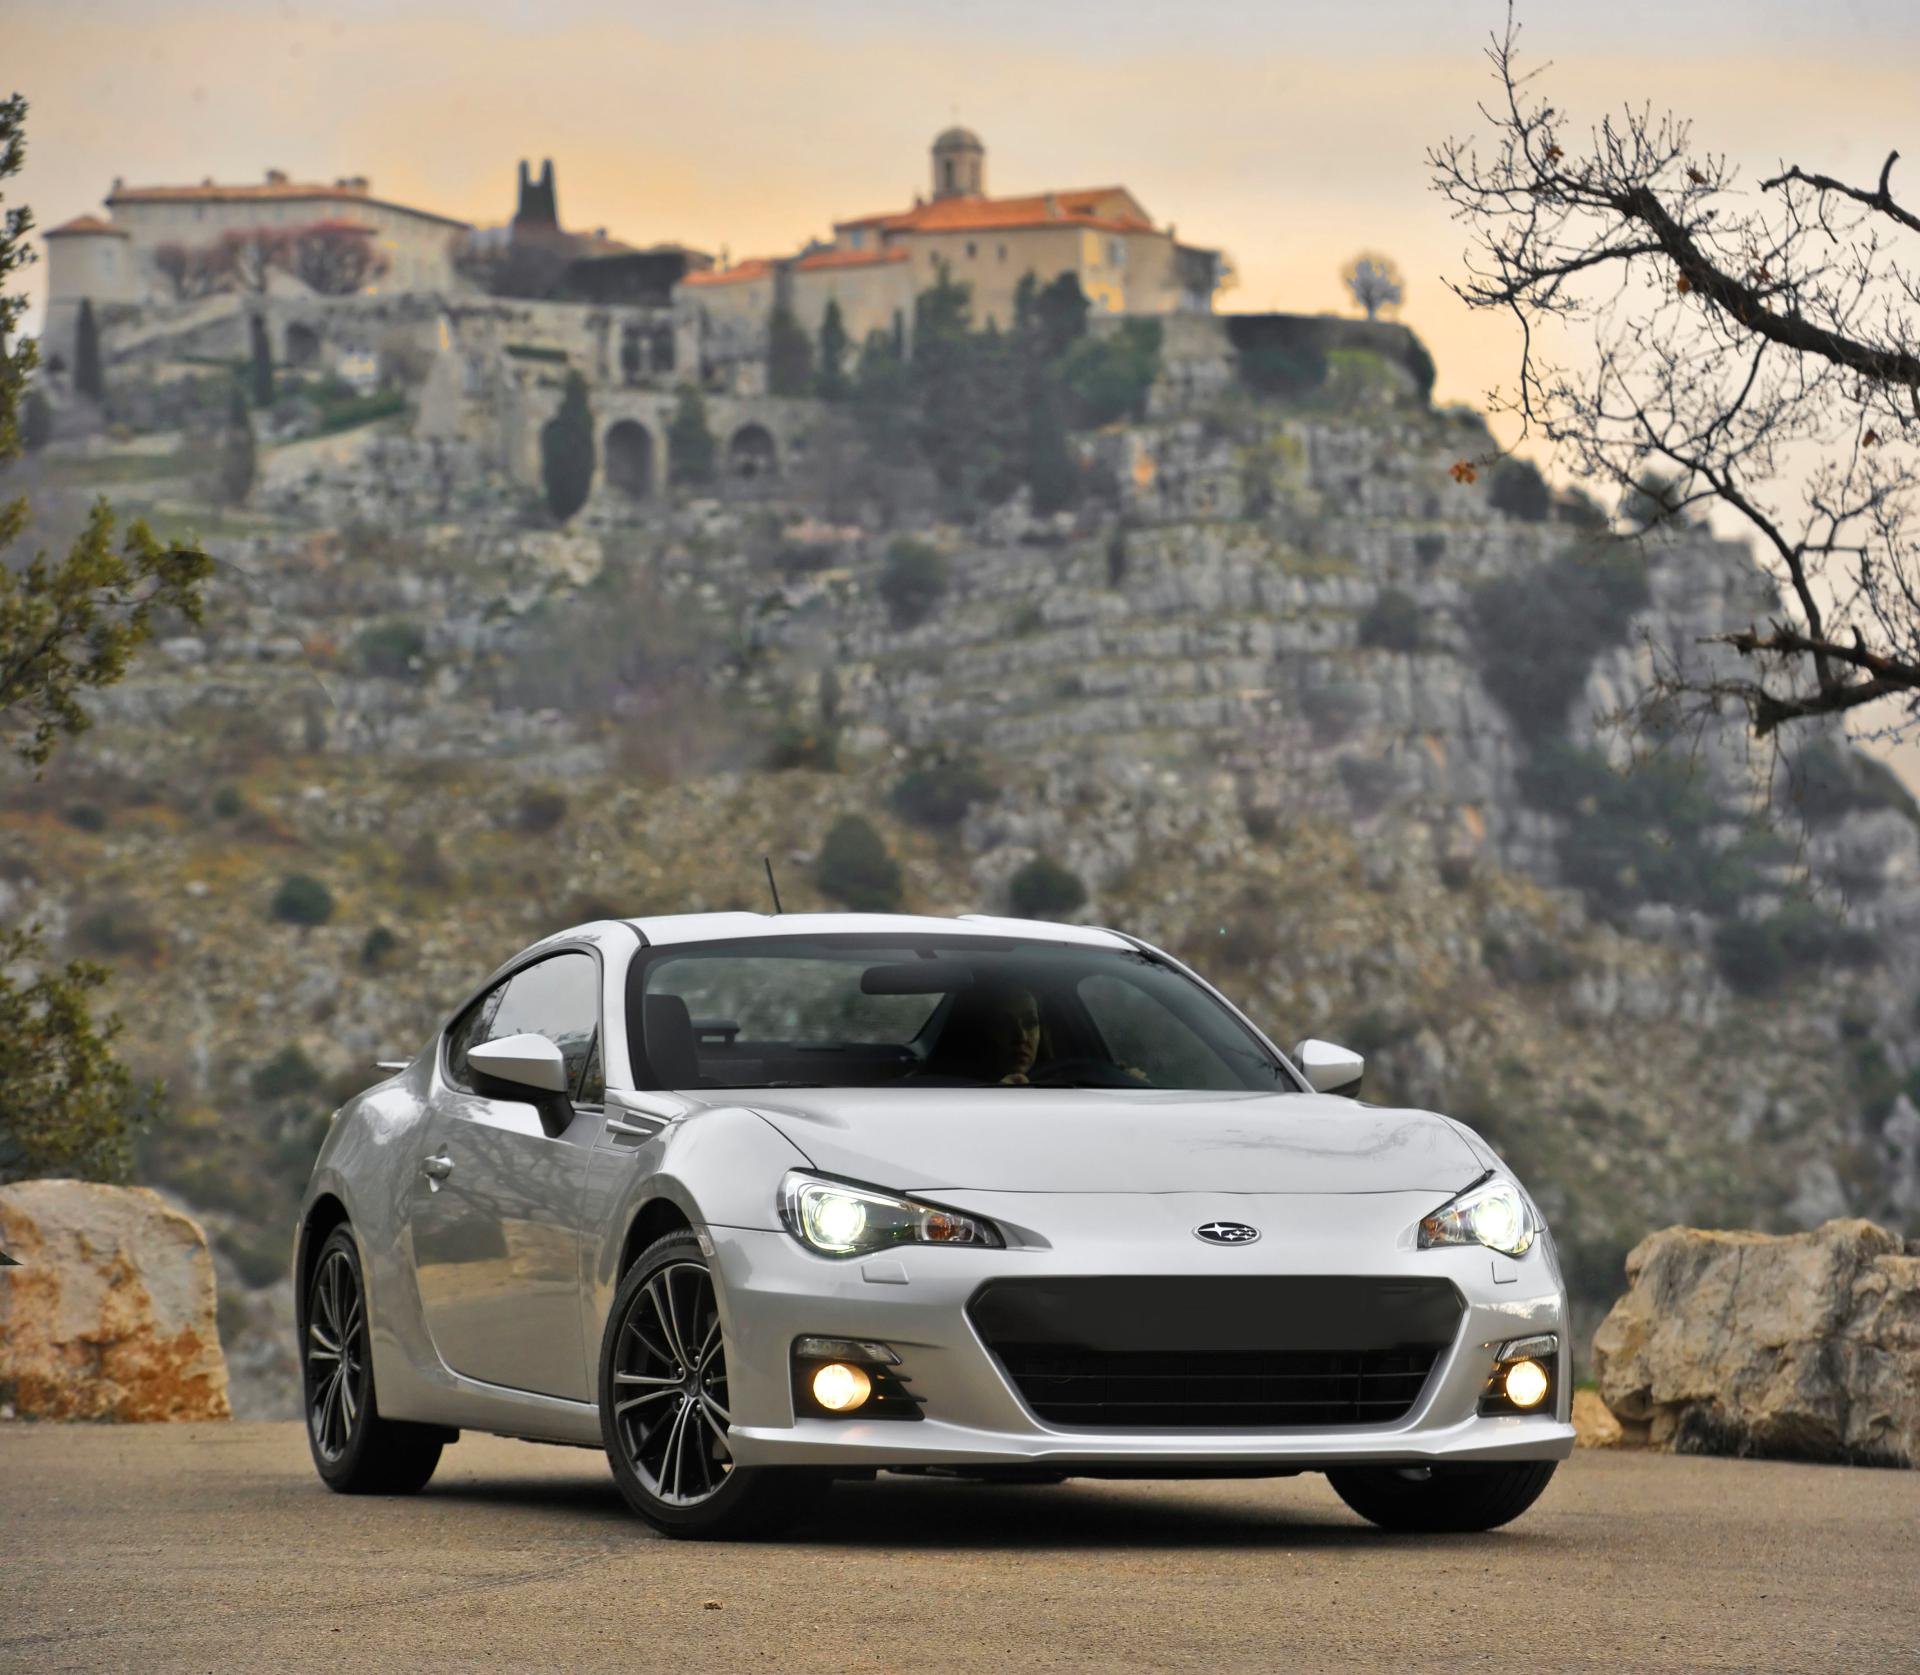 2013 Subaru BRZ News And Information